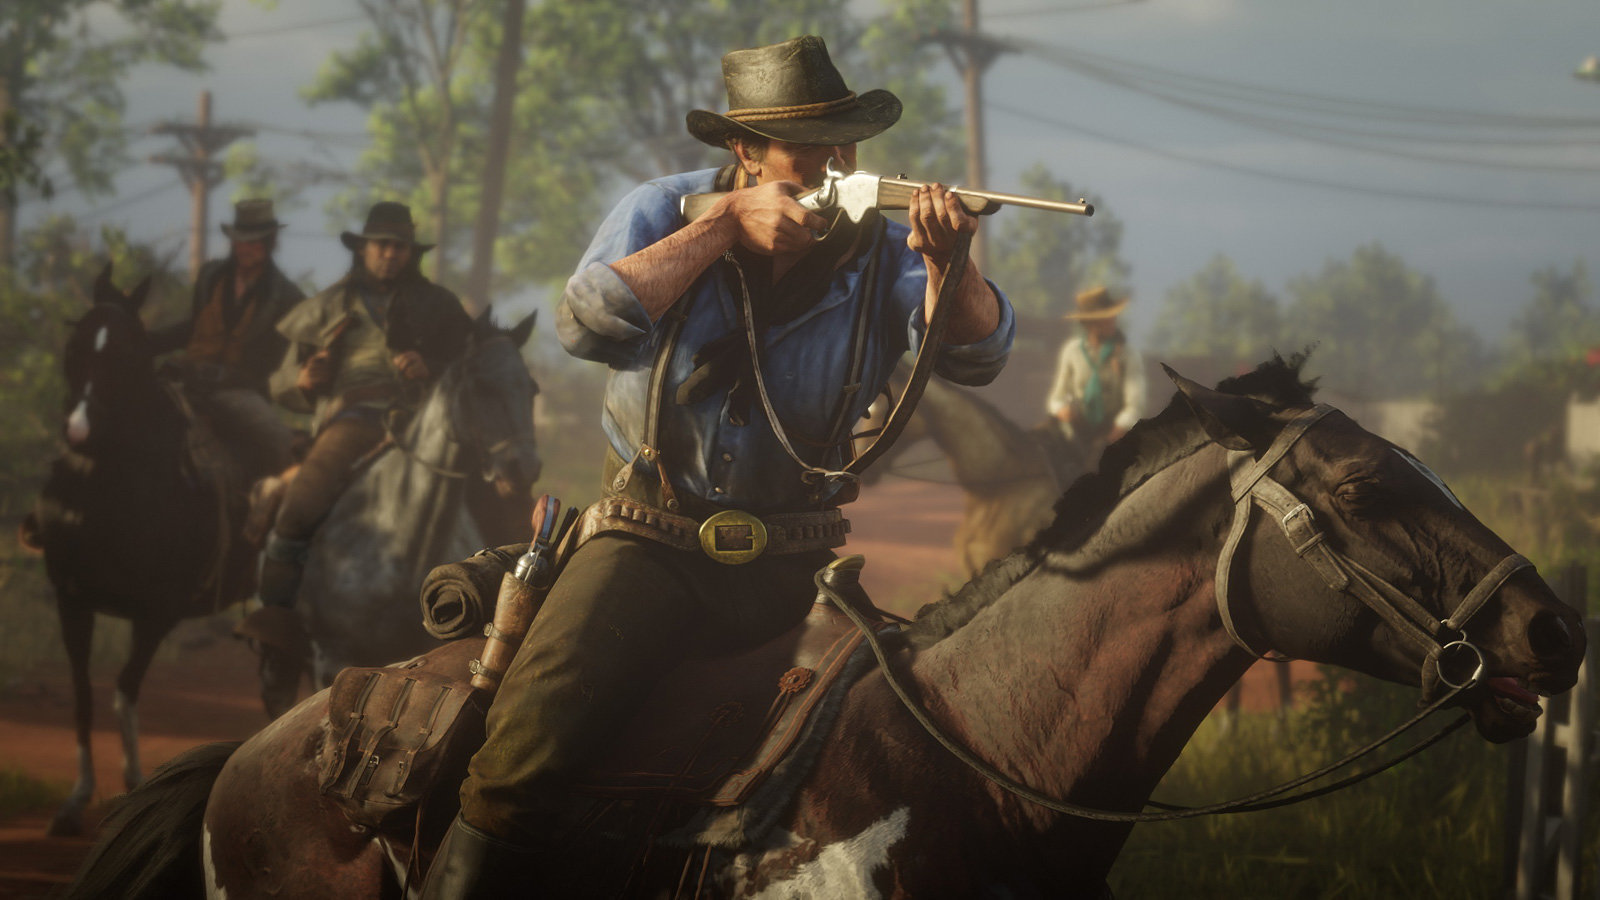 Red Dead Redemption 2 is just $30 today at Best Buy - VG247